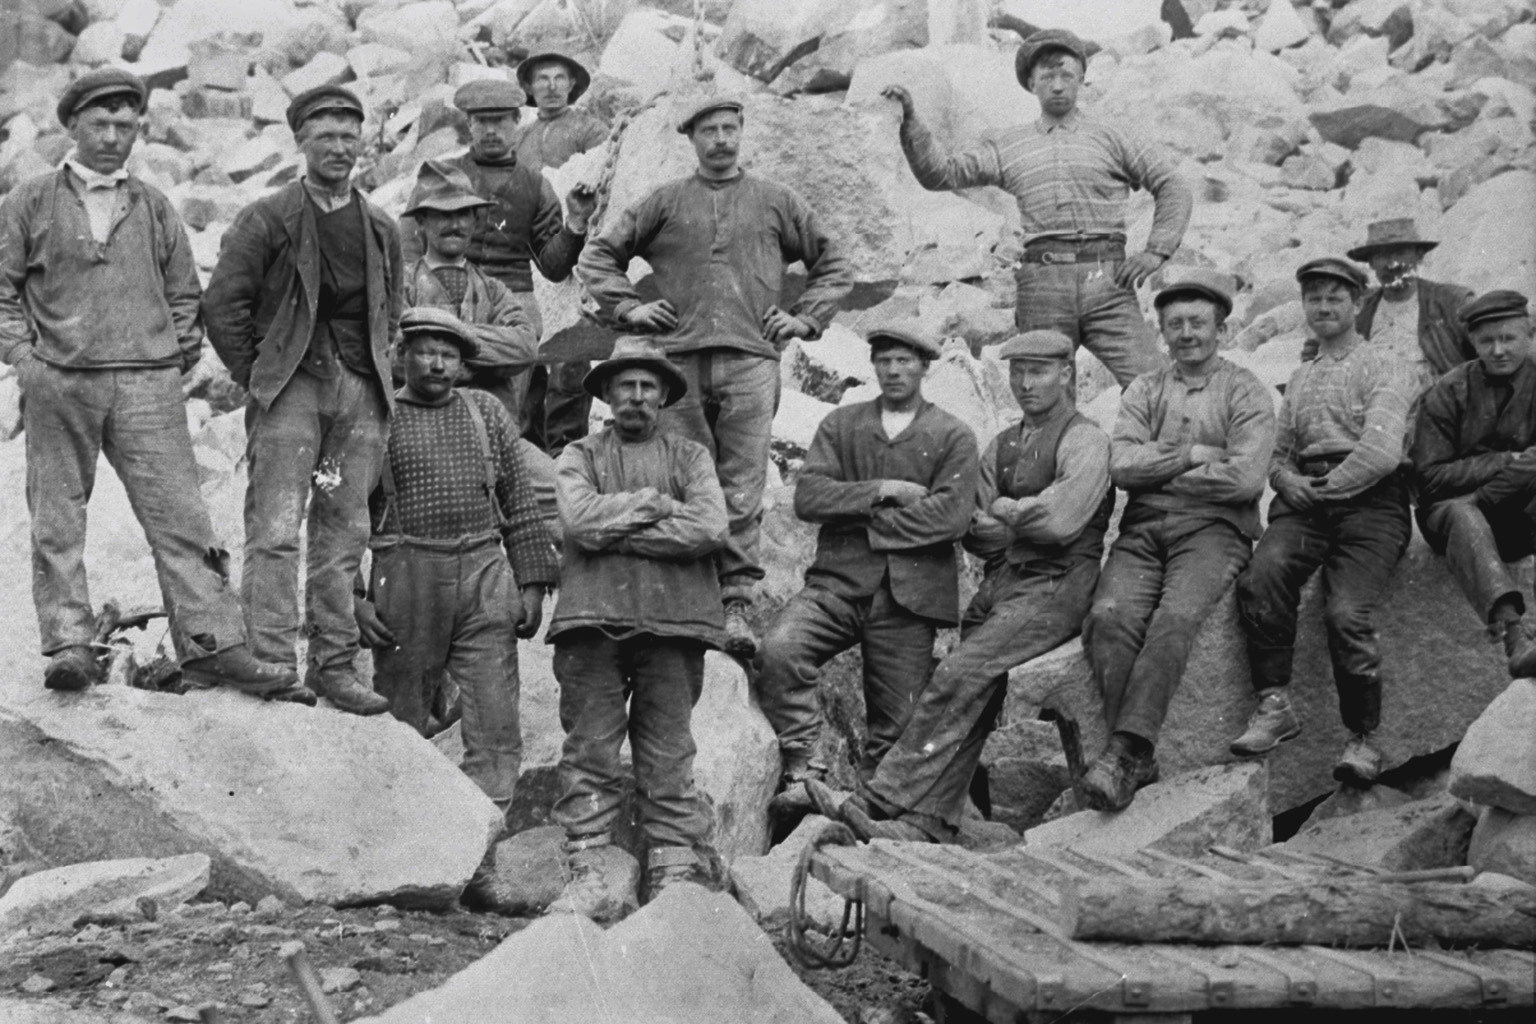 Navvies in Skjeggedal at the beginning of 20th century.  Photo: Kraftmuseet archives